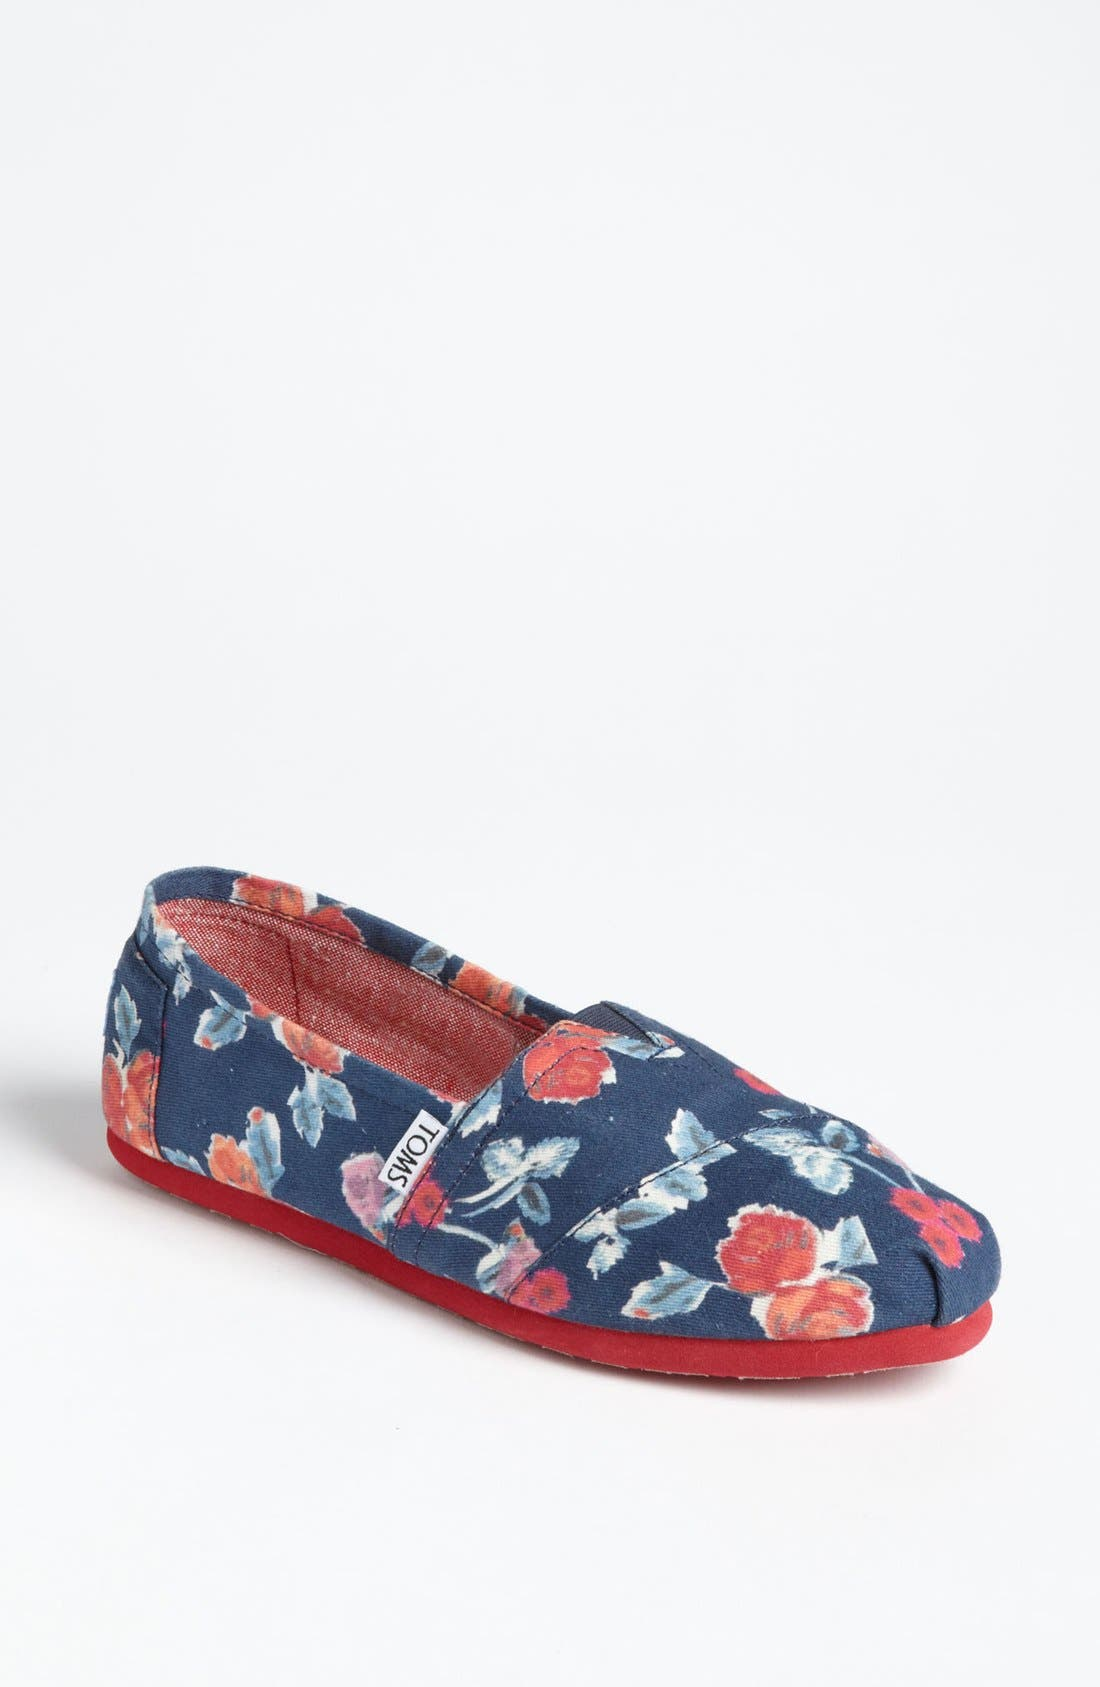 Alternate Image 1 Selected - TOMS 'Classic - Navy Floral' Slip-On (Women)